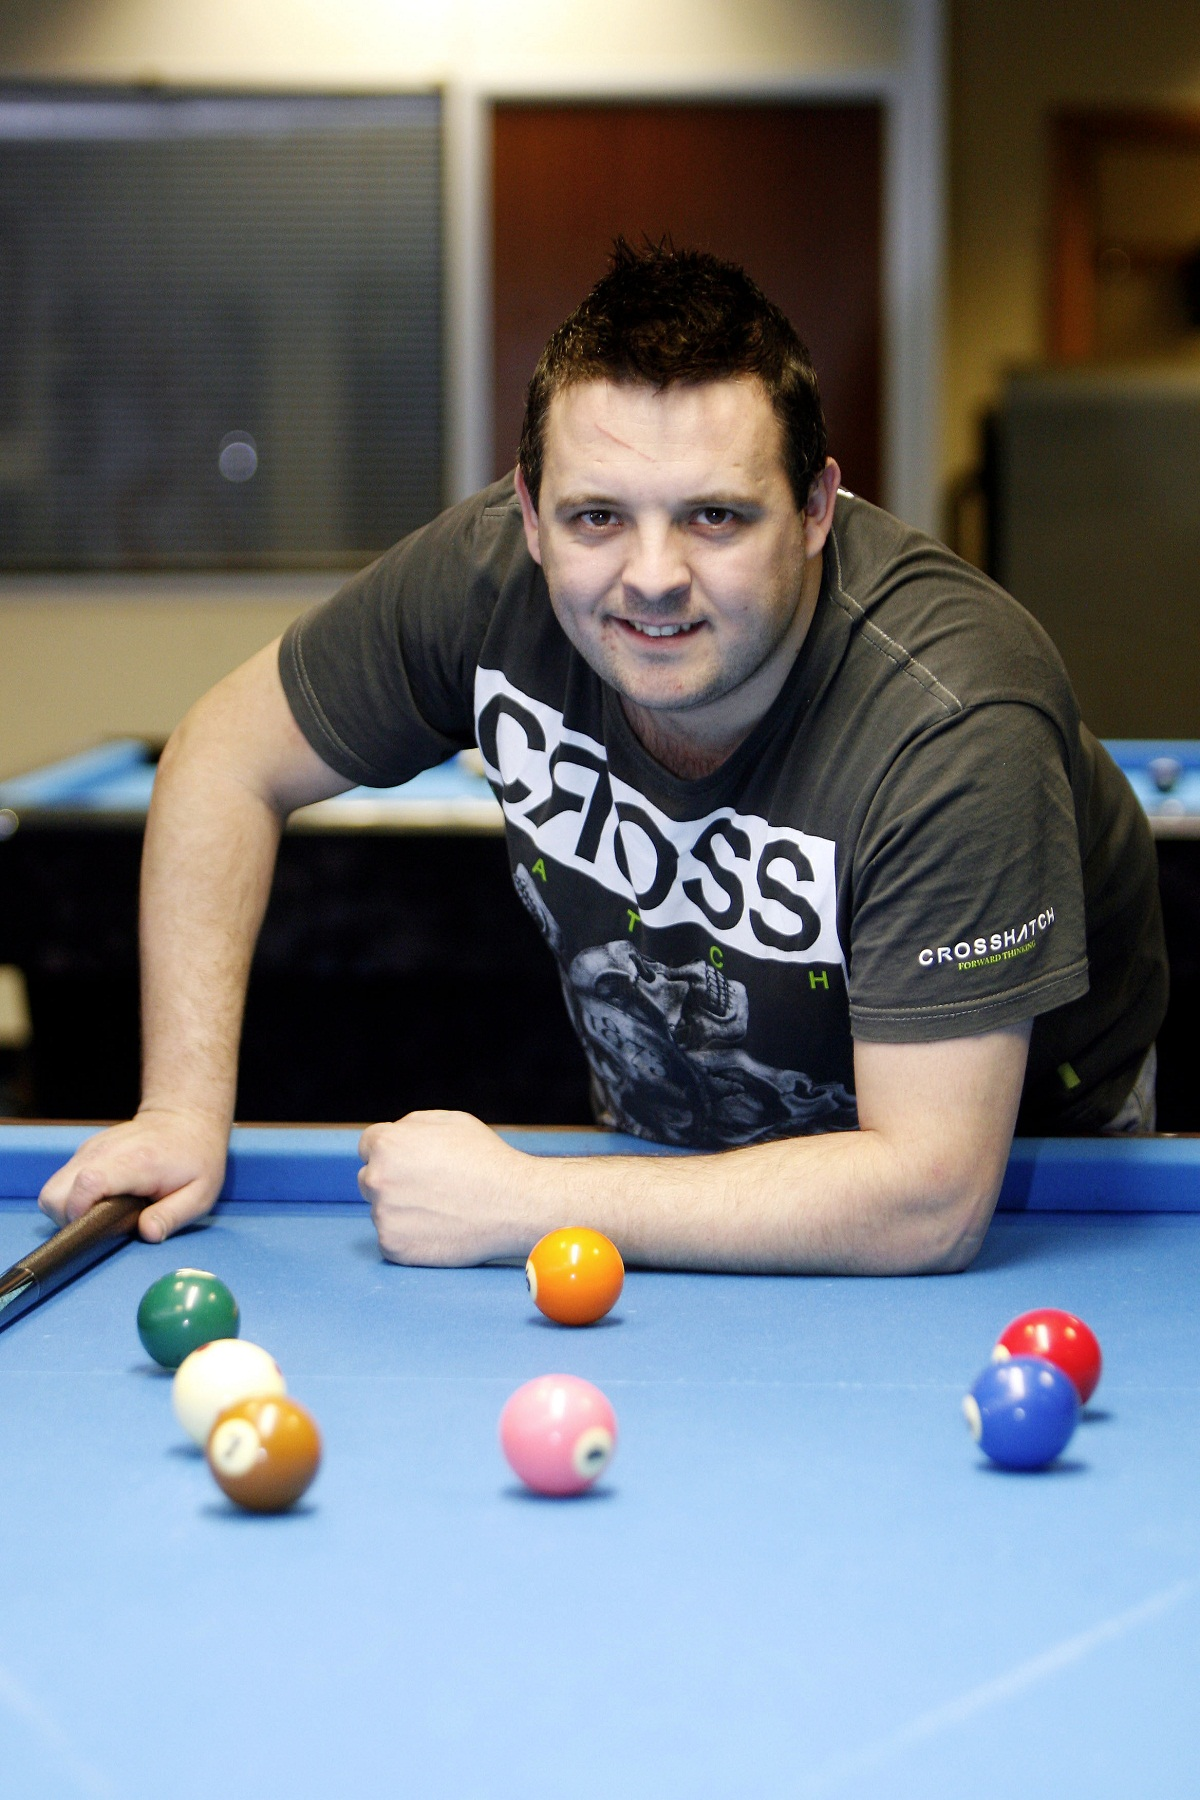 Pool ace Chris Melling bowed to teenager Ross Muir in the Australi